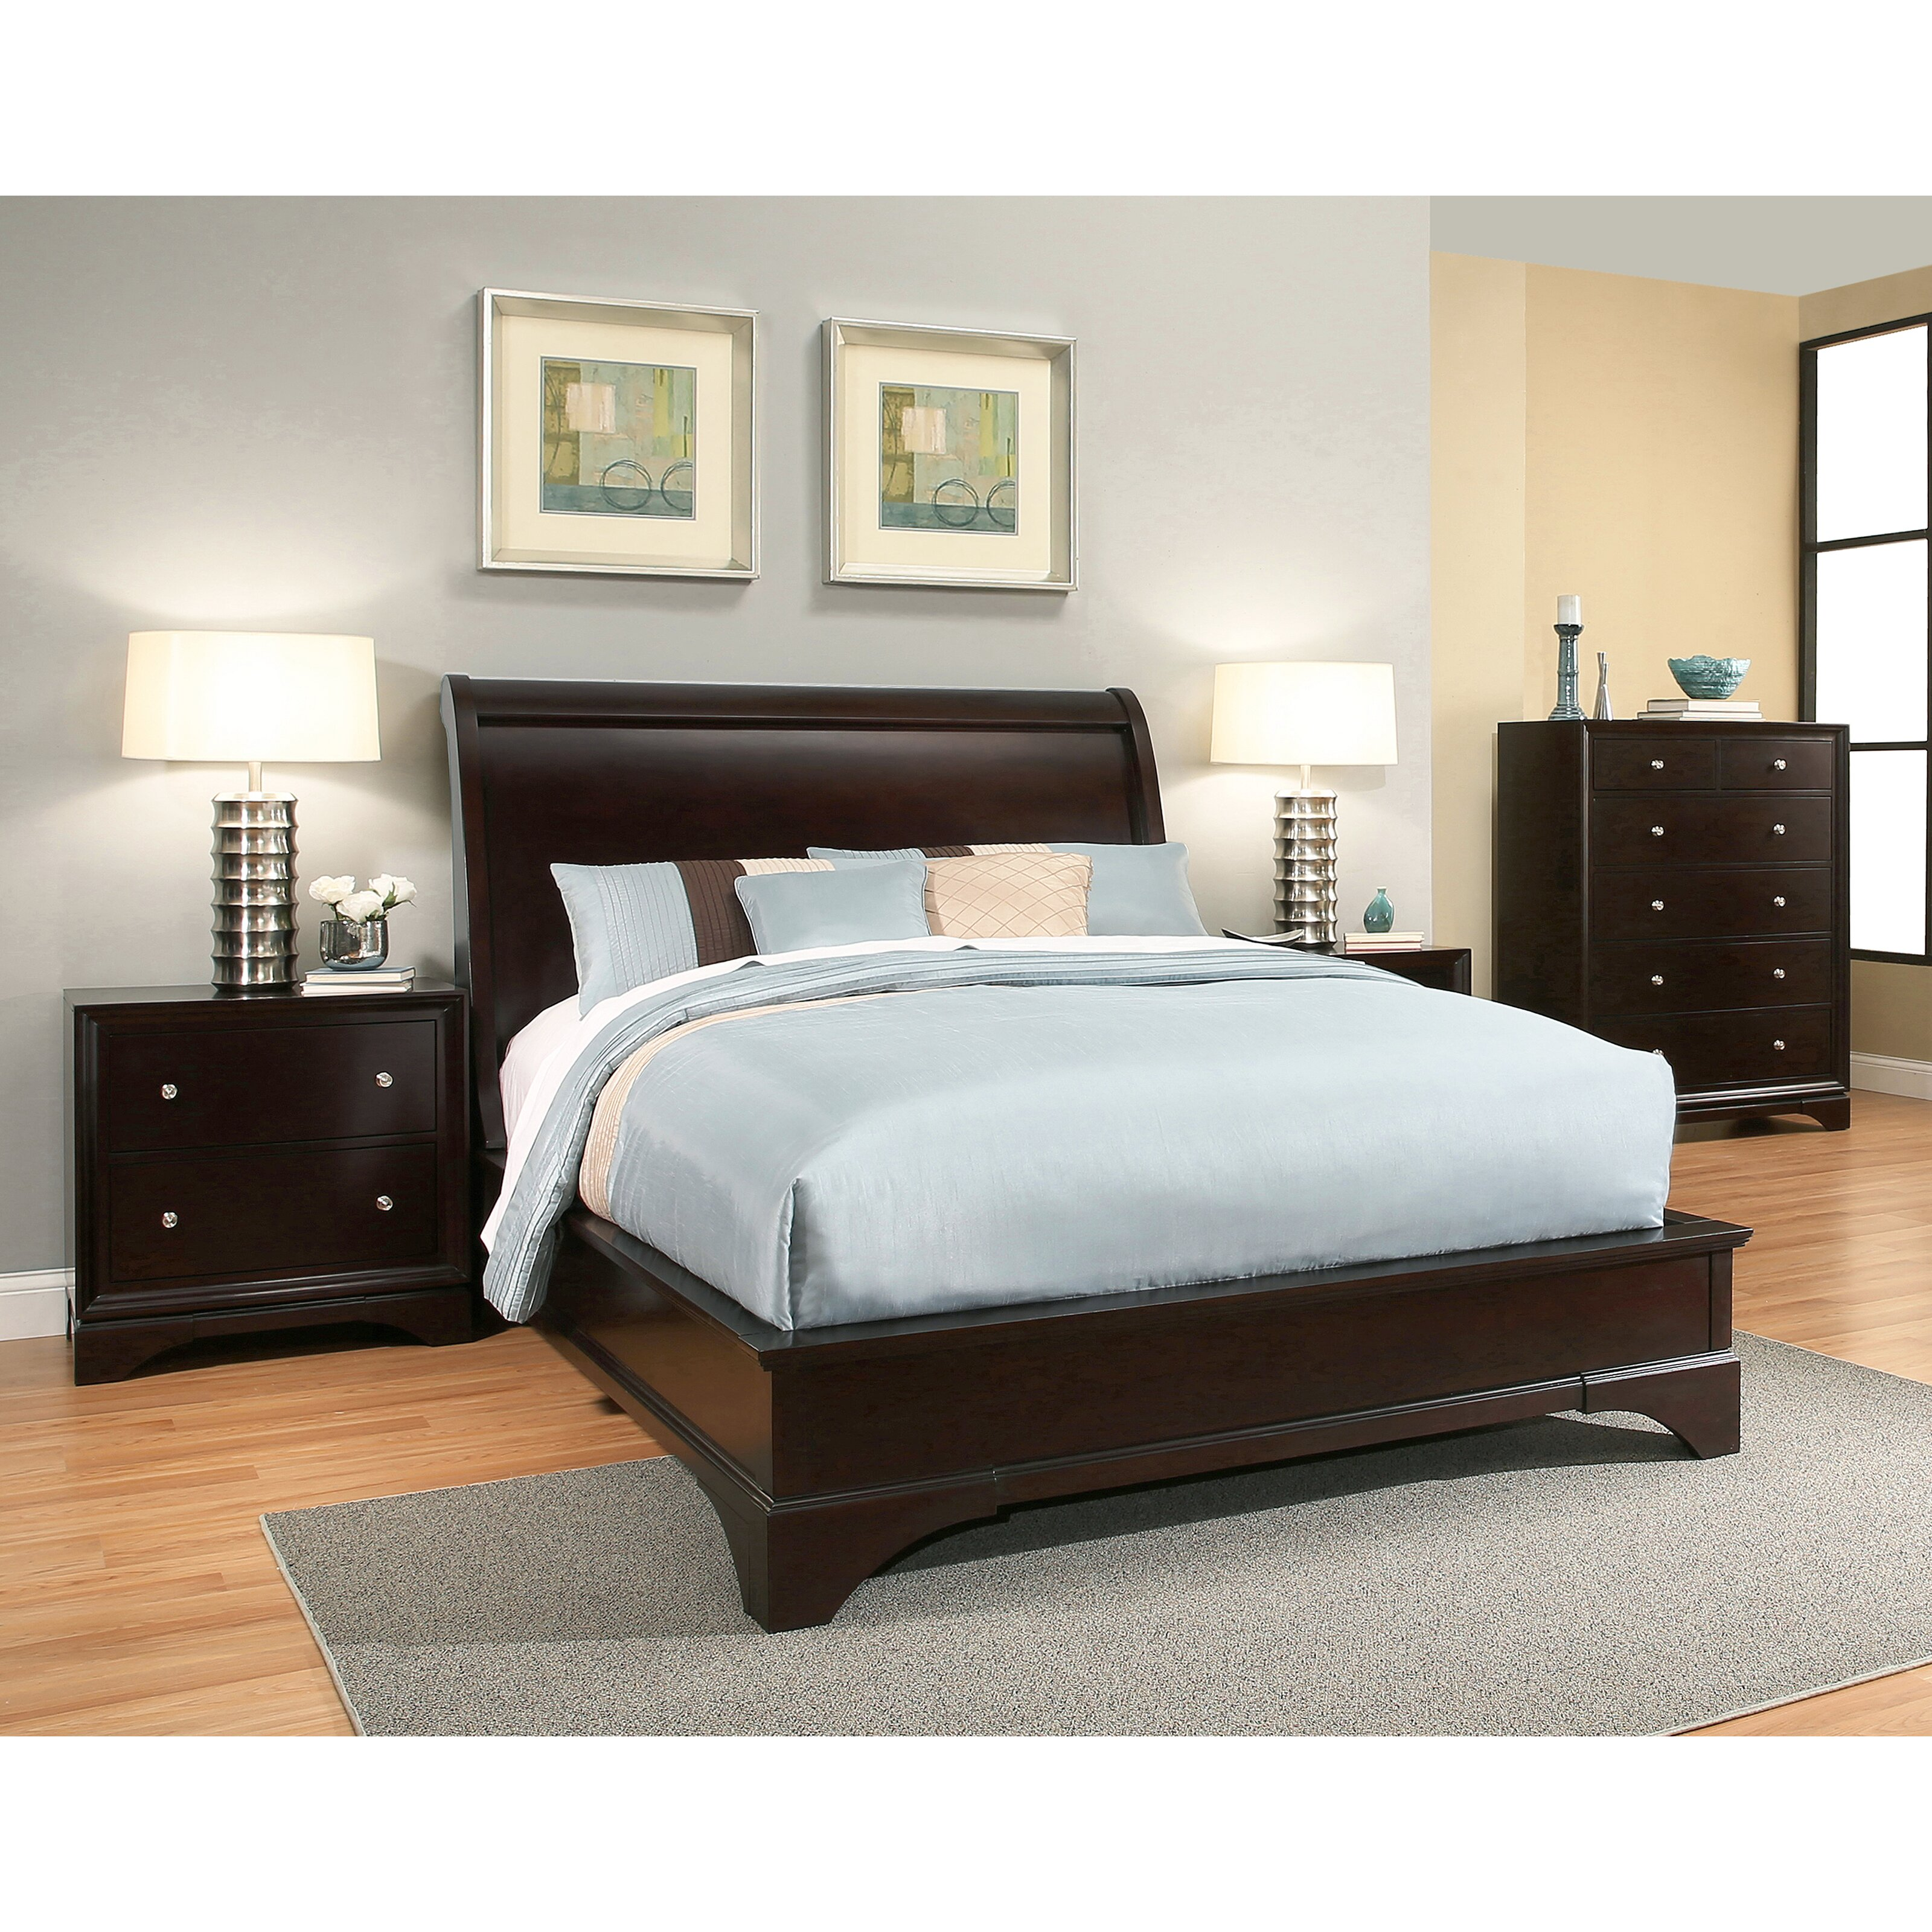 Latitude run juliana sleigh 4 piece bedroom set wayfair for Bedroom 4 piece set